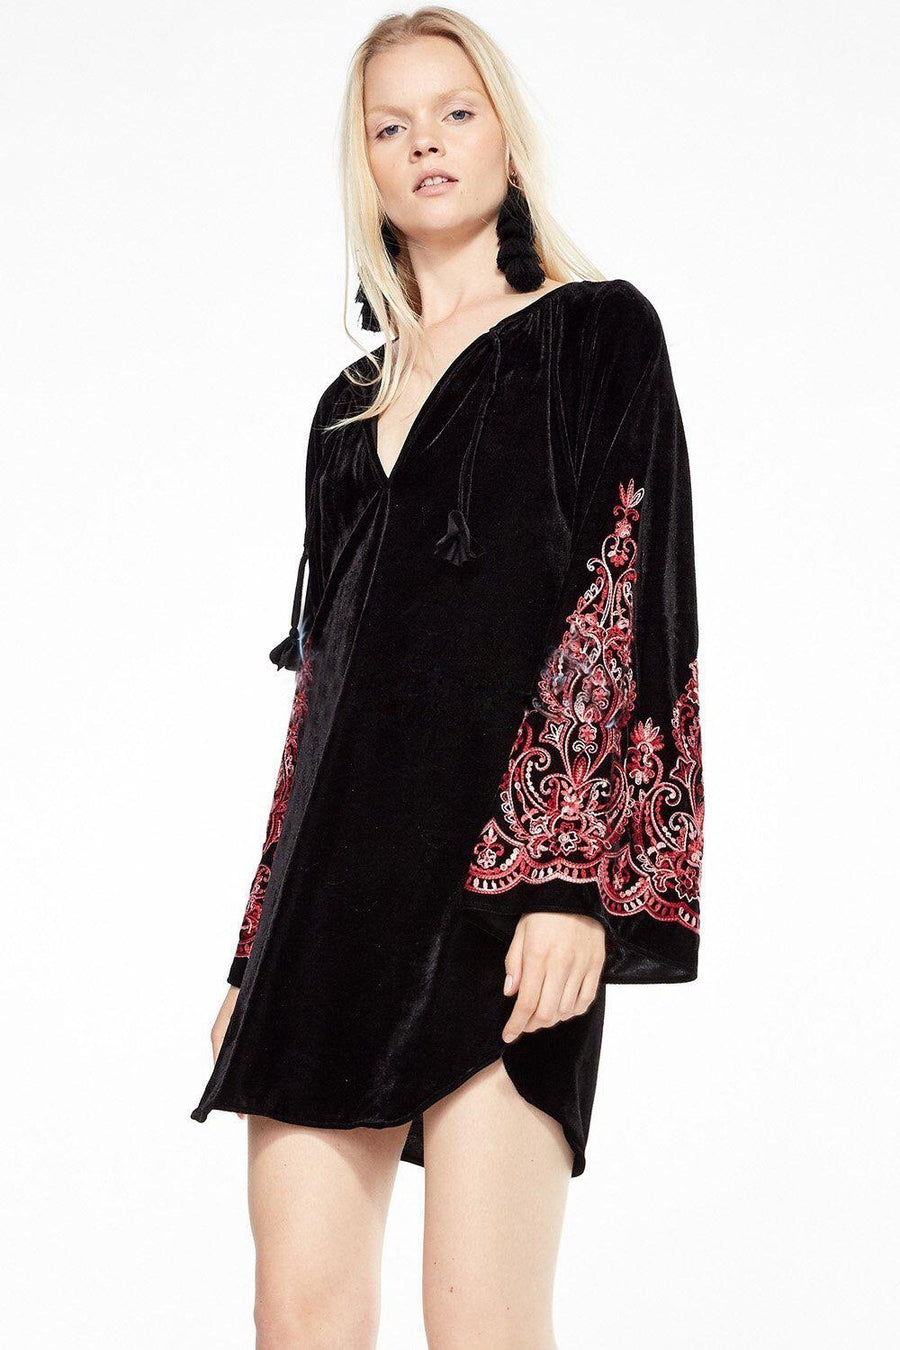 Velvet speaker sleeves exquisite embroidery black lace dress